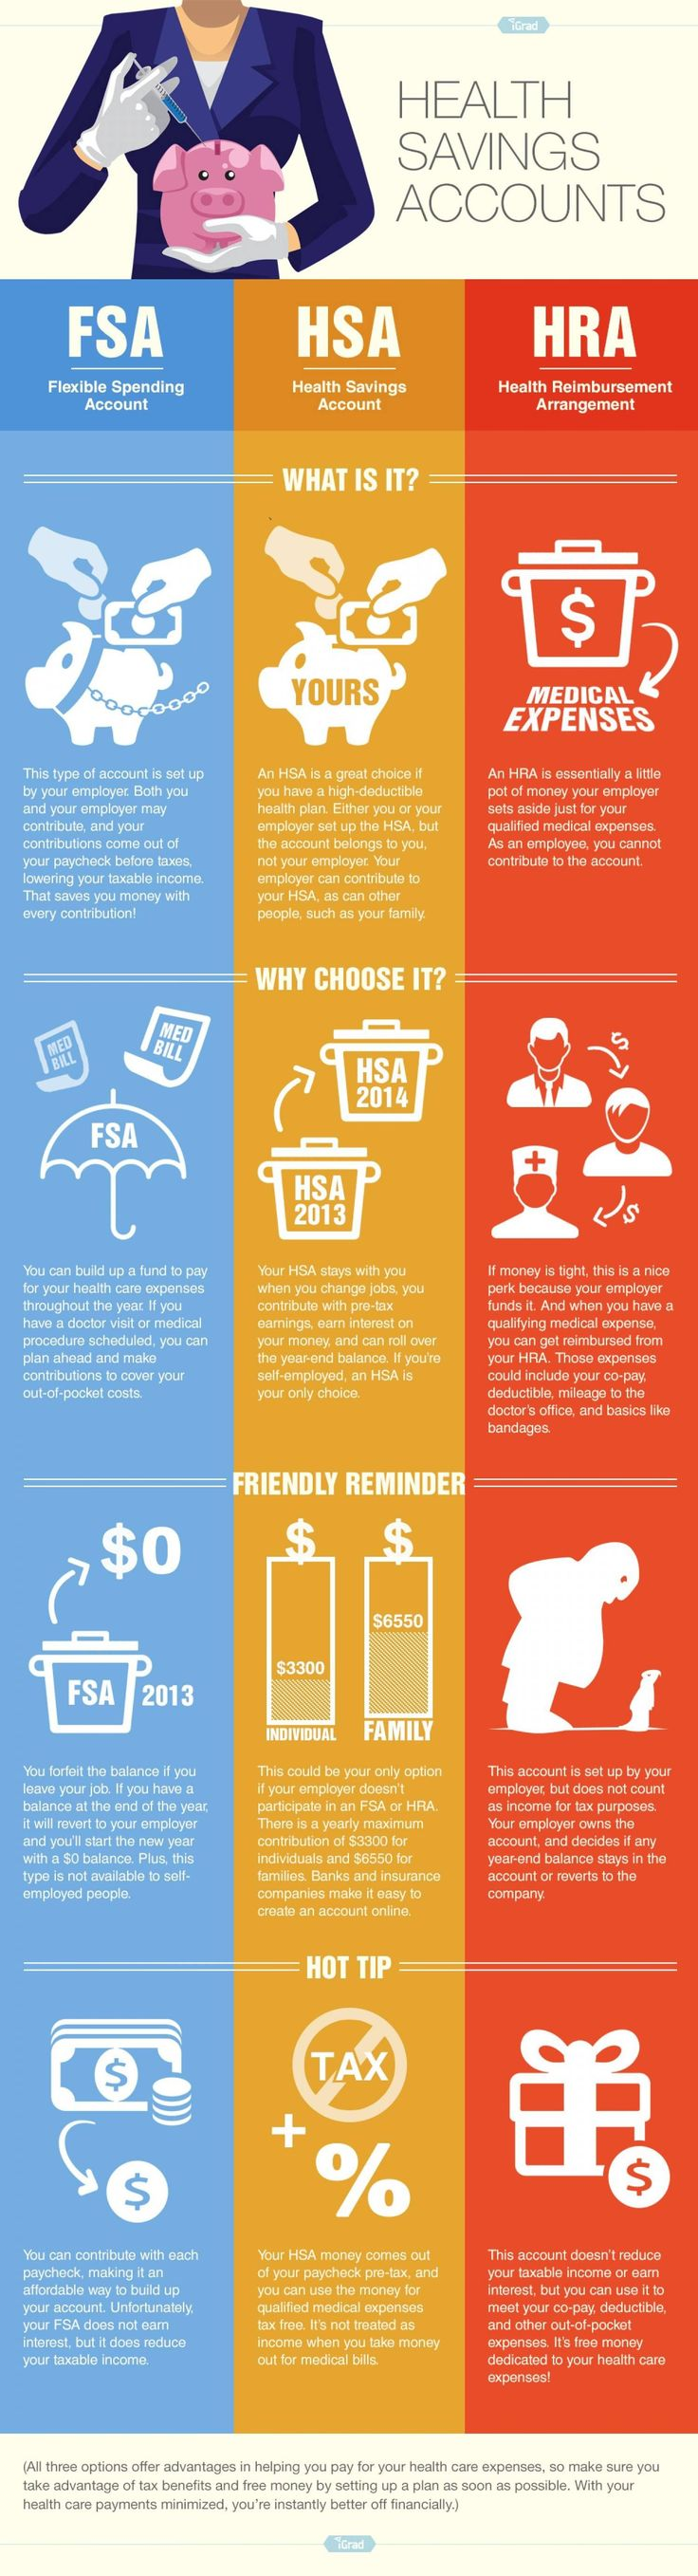 Health Savings Accounts   #Infographic #Health #SavingsAccounts